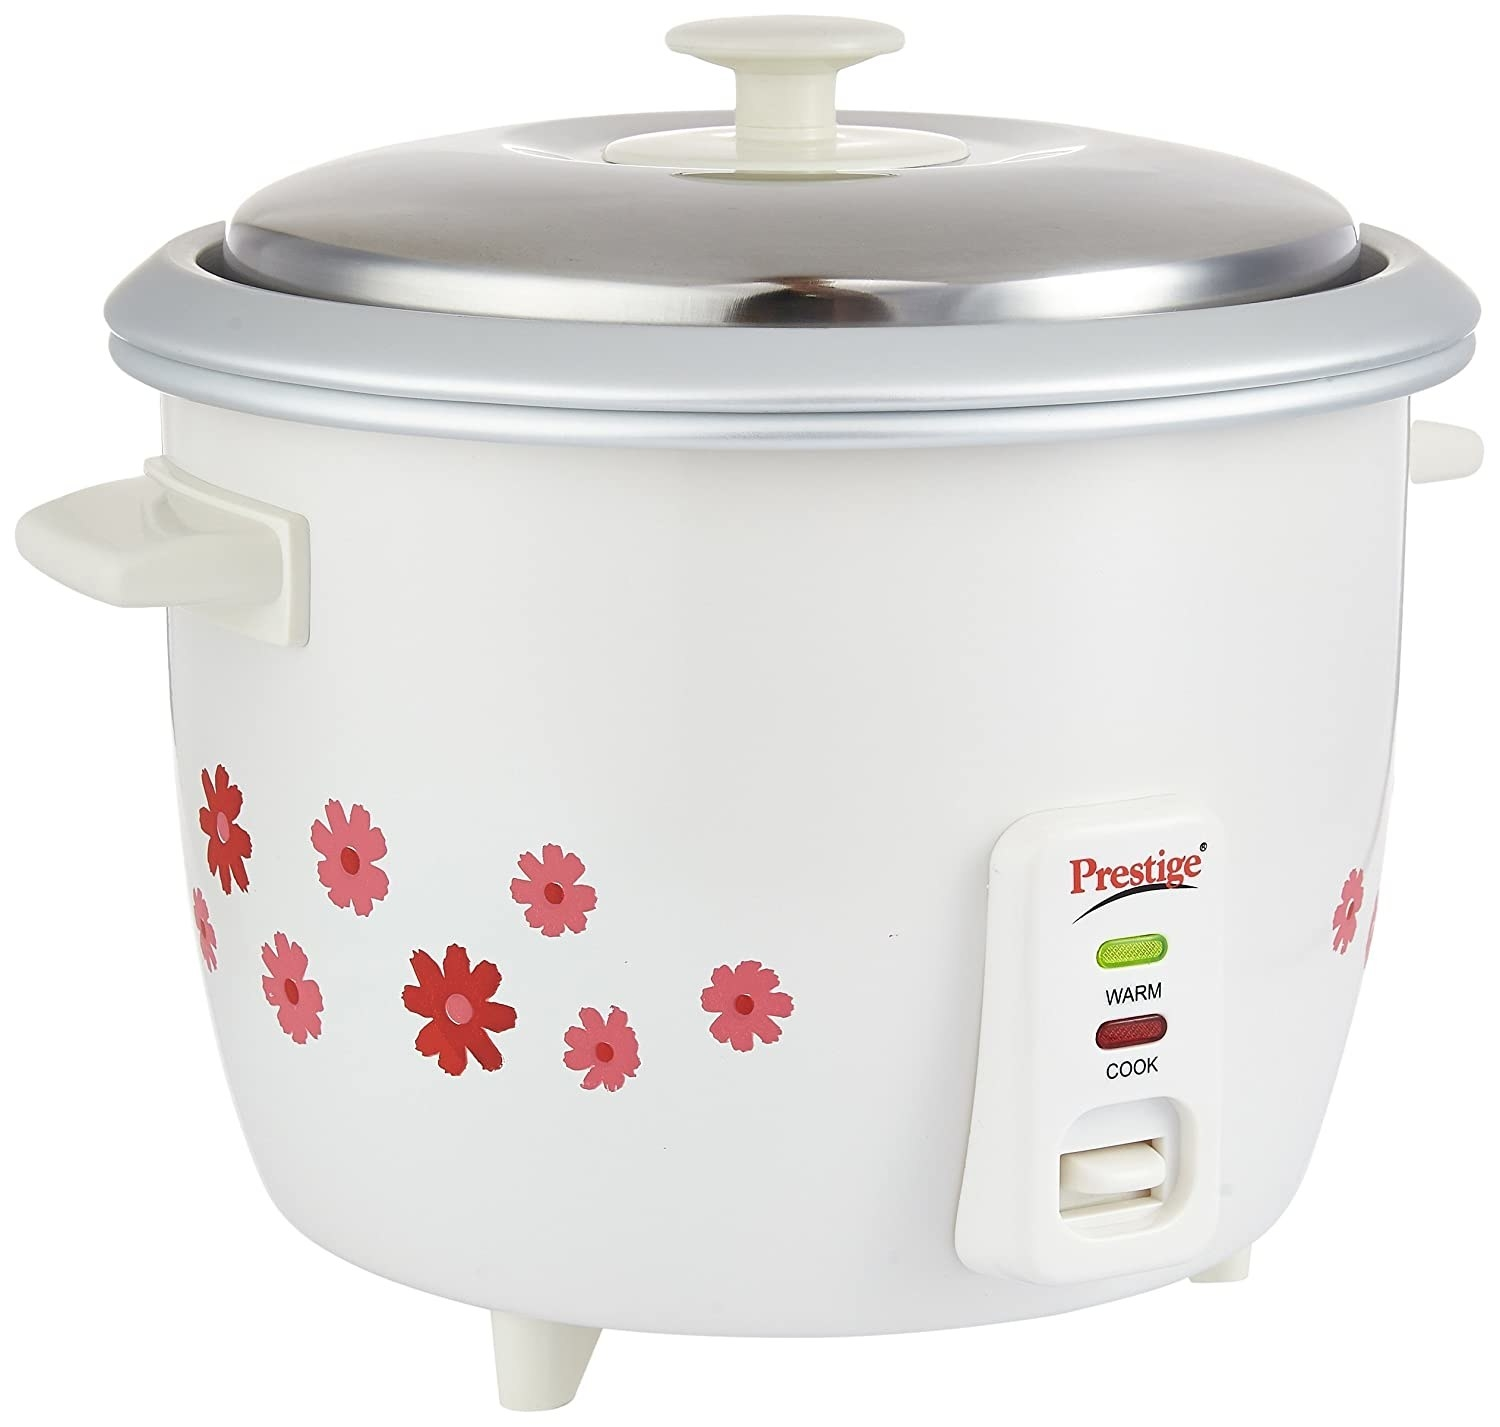 A white rice cooker